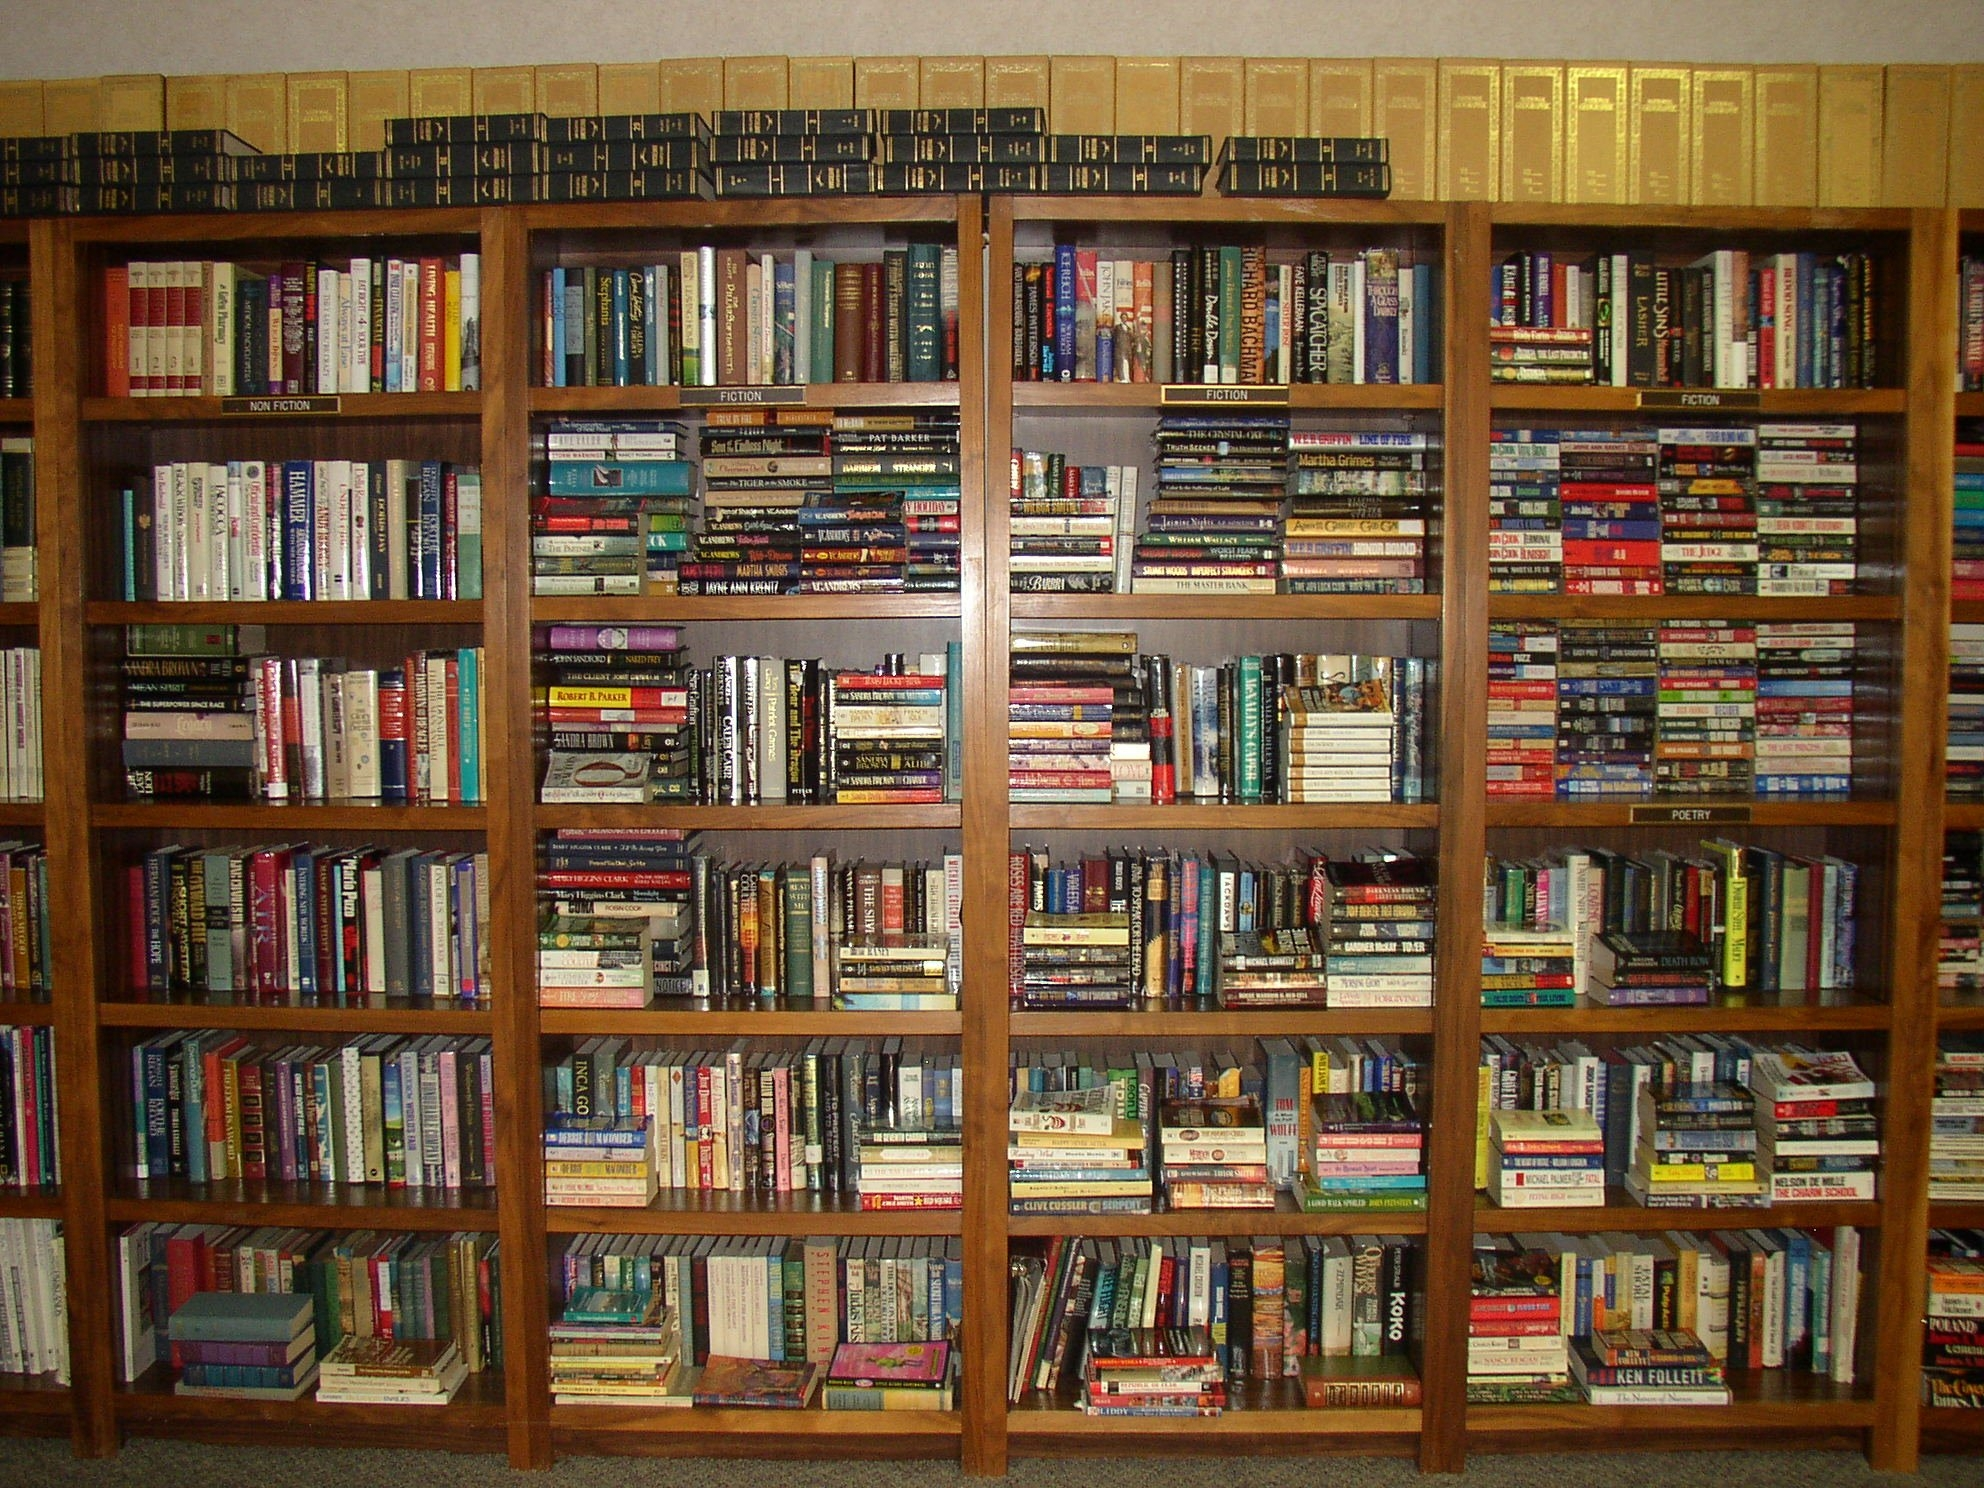 Shelving Awesome Shelving Ideas Contemporary Library Design For With Library Shelfs (View 13 of 15)